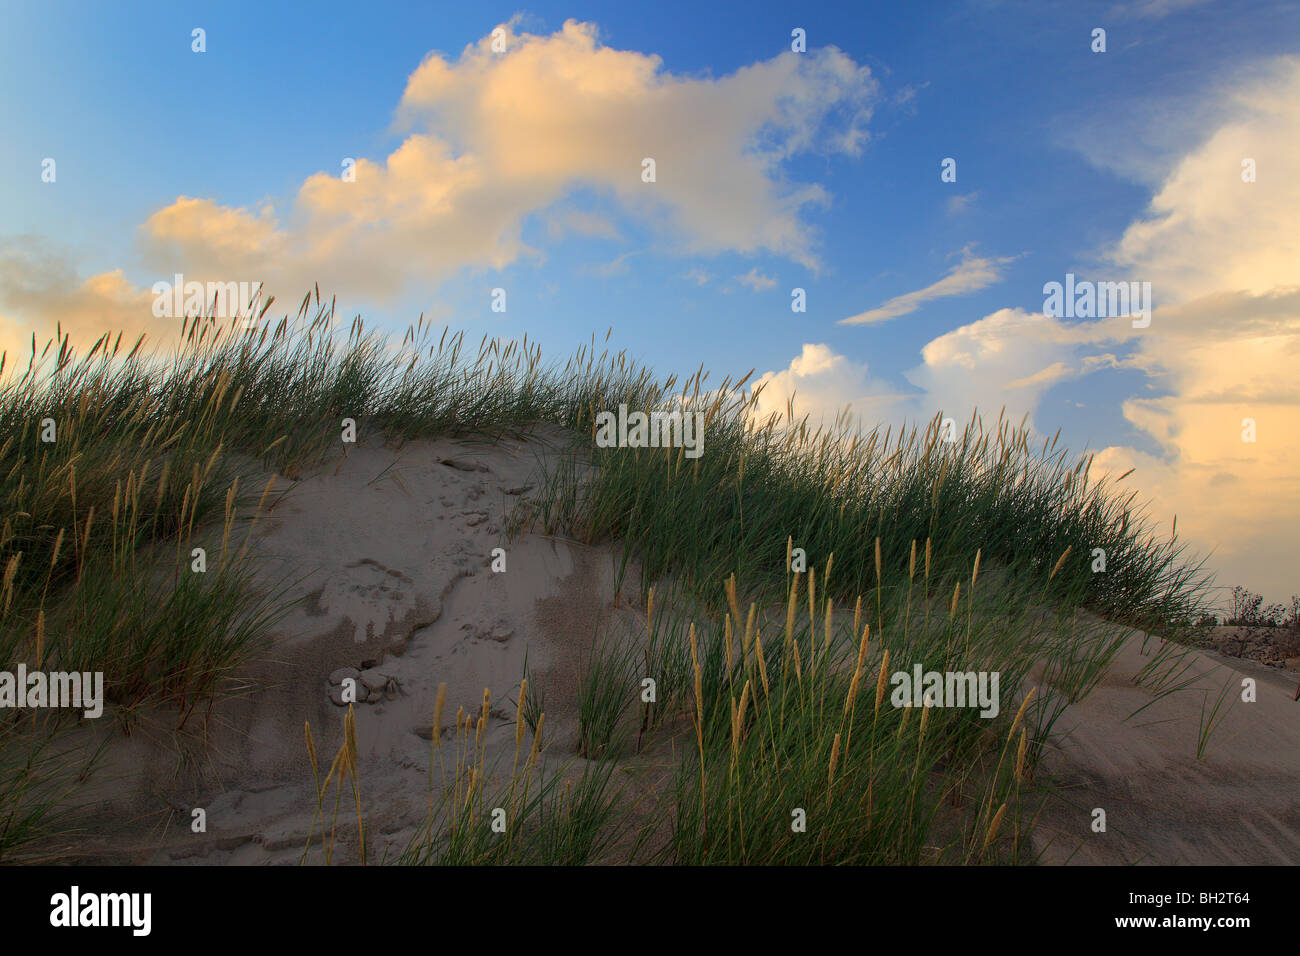 Raabjerg Mile is a migrating coastal dune between Skagen and Frederikshavn, Denmark. - Stock Image